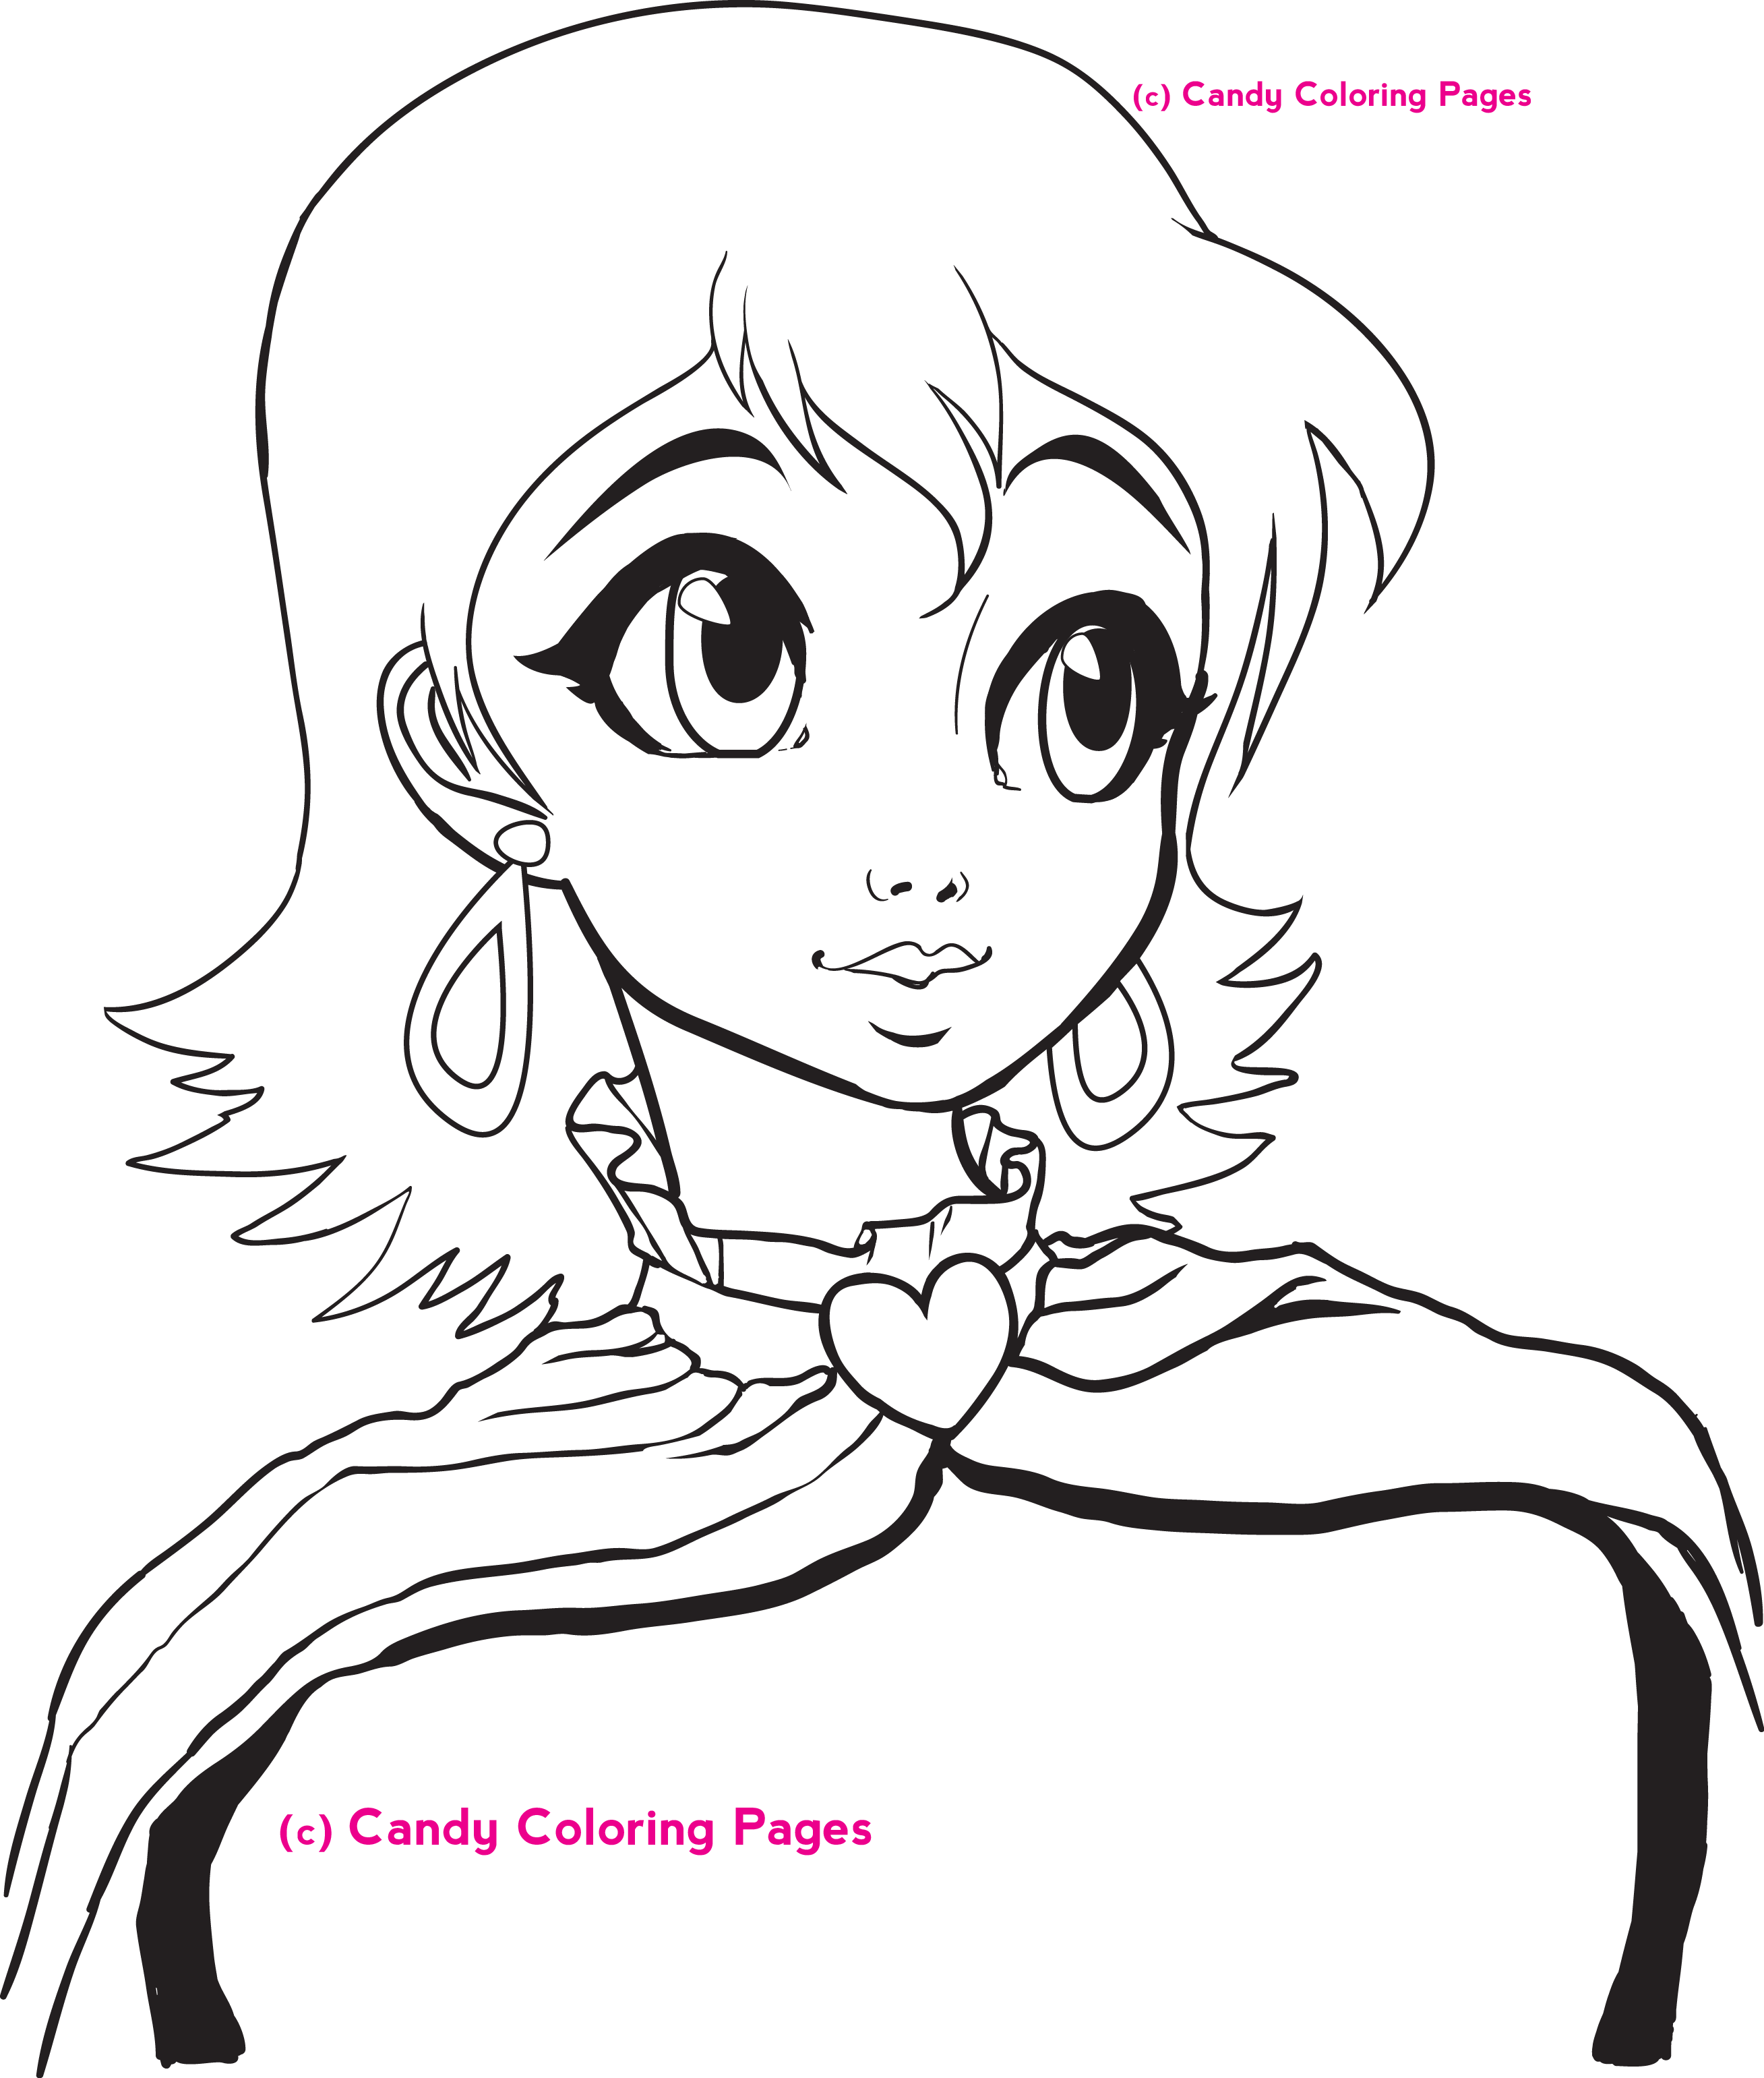 2617x3082 Penny Candy Coloring Pages Penny Candy Coloring Pages Fun